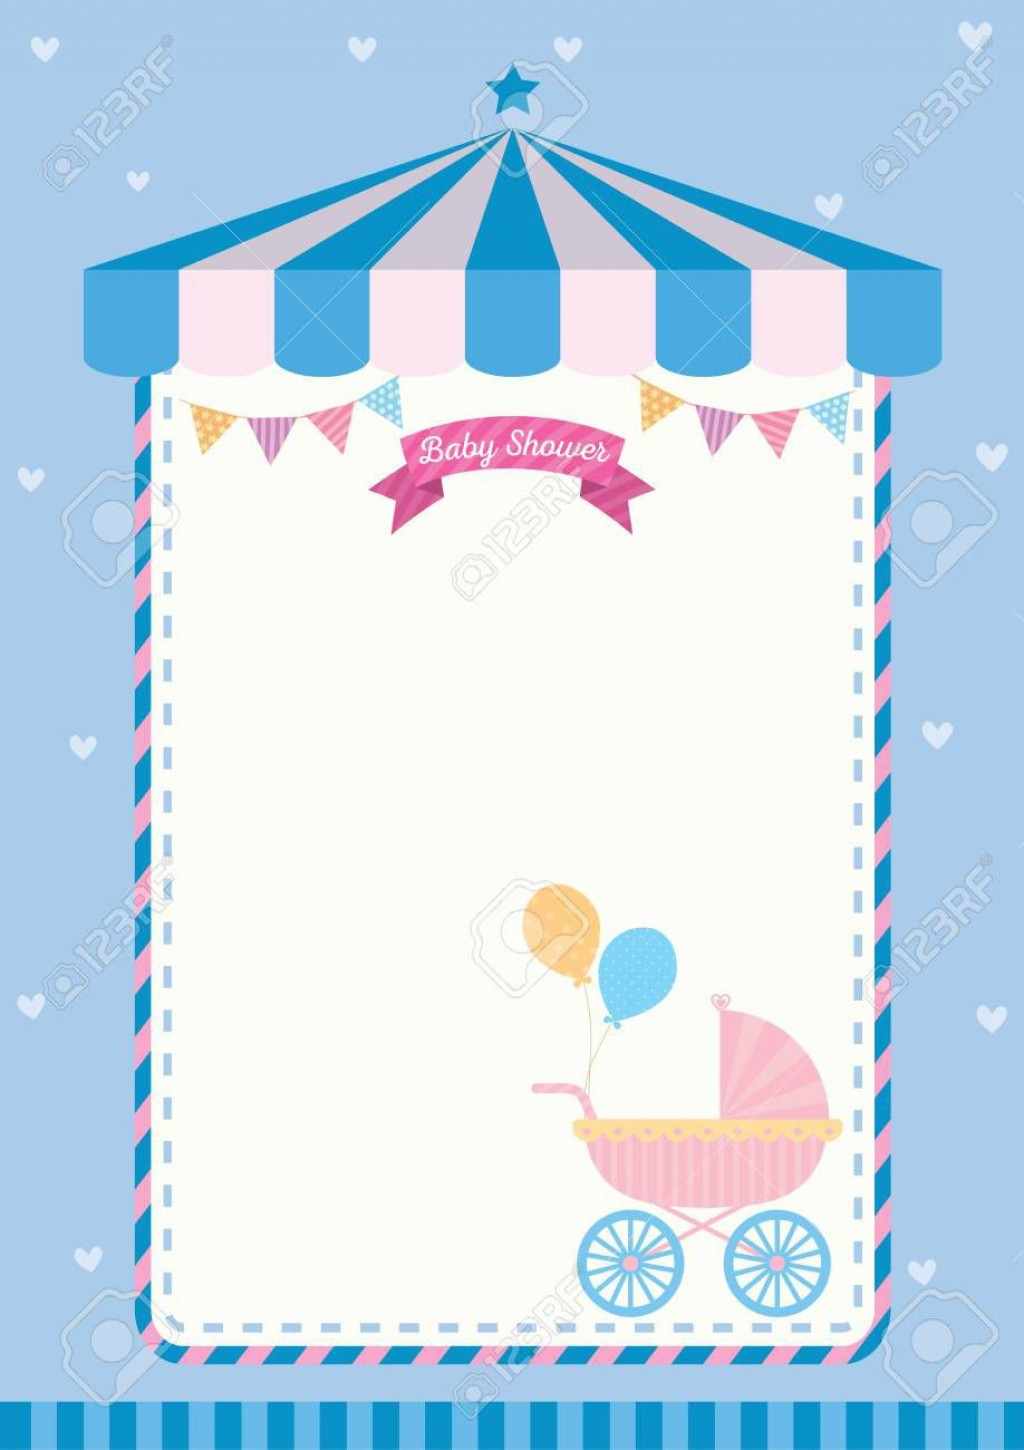 004 Beautiful Baby Shower Card Template Concept  Microsoft Word Invitation Design Online Printable FreeLarge